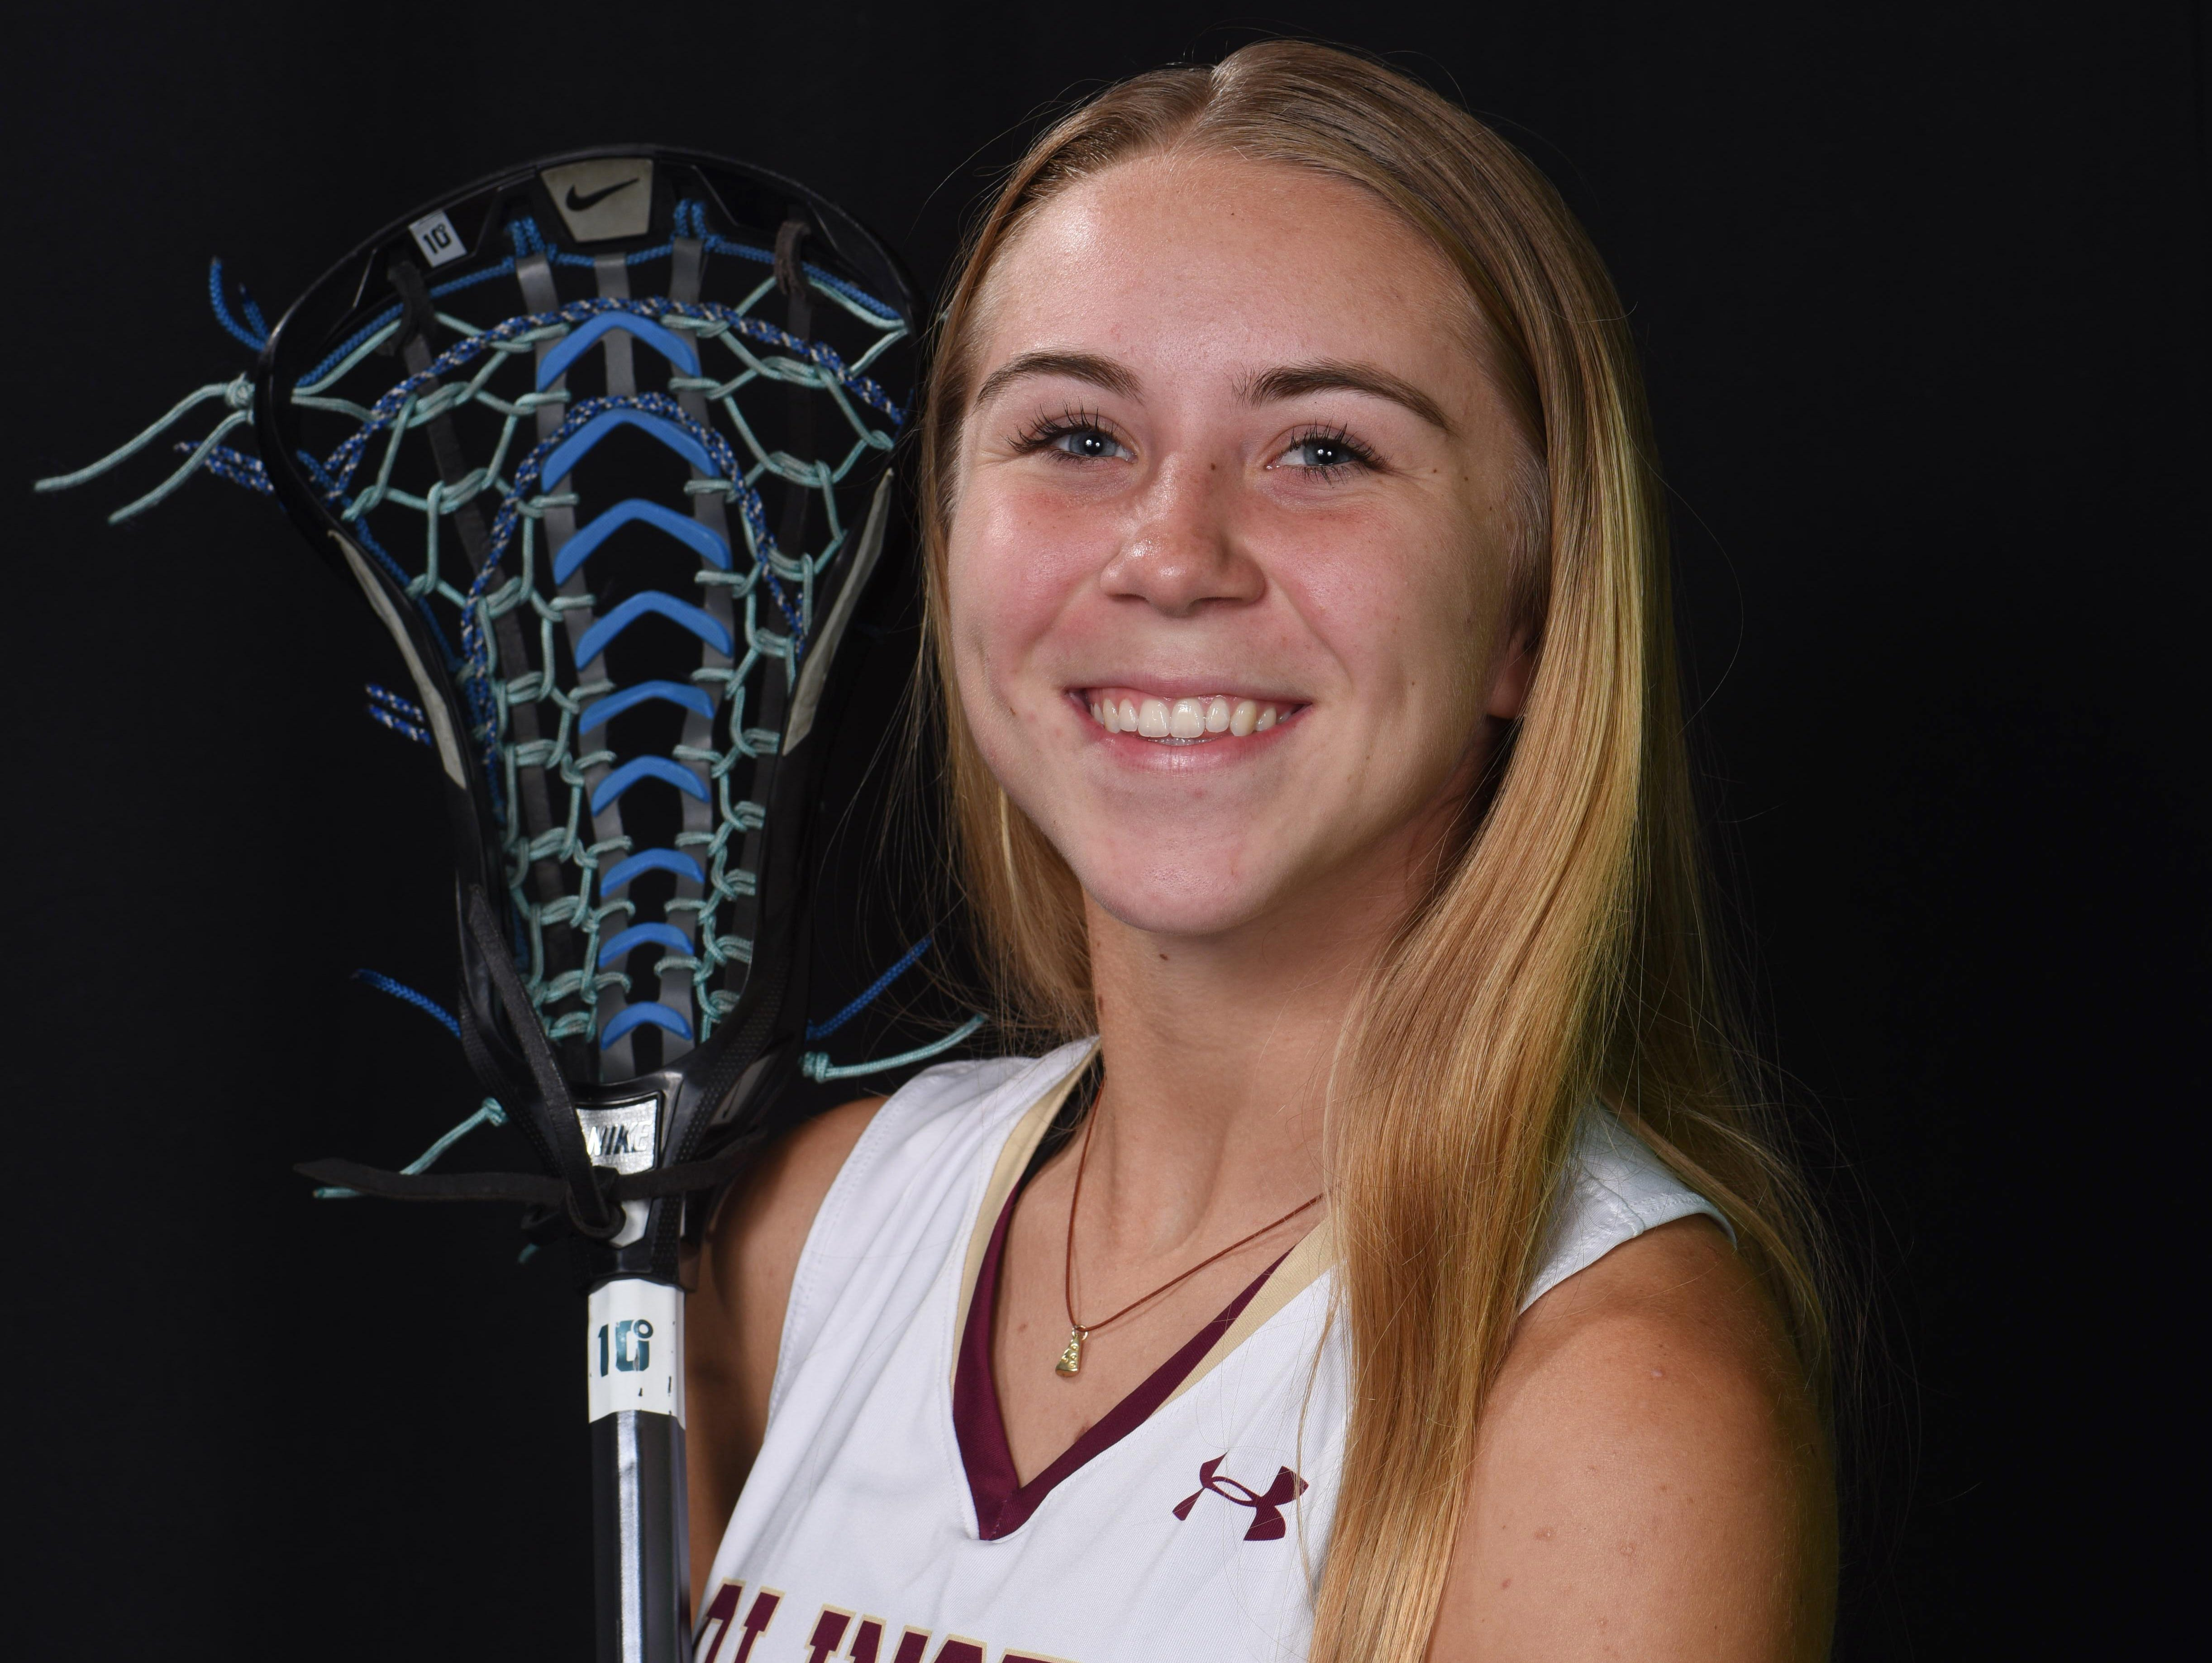 Arlington High School's Taylor Nyberg was named the Journal's girls lacrosse Player of the Year.